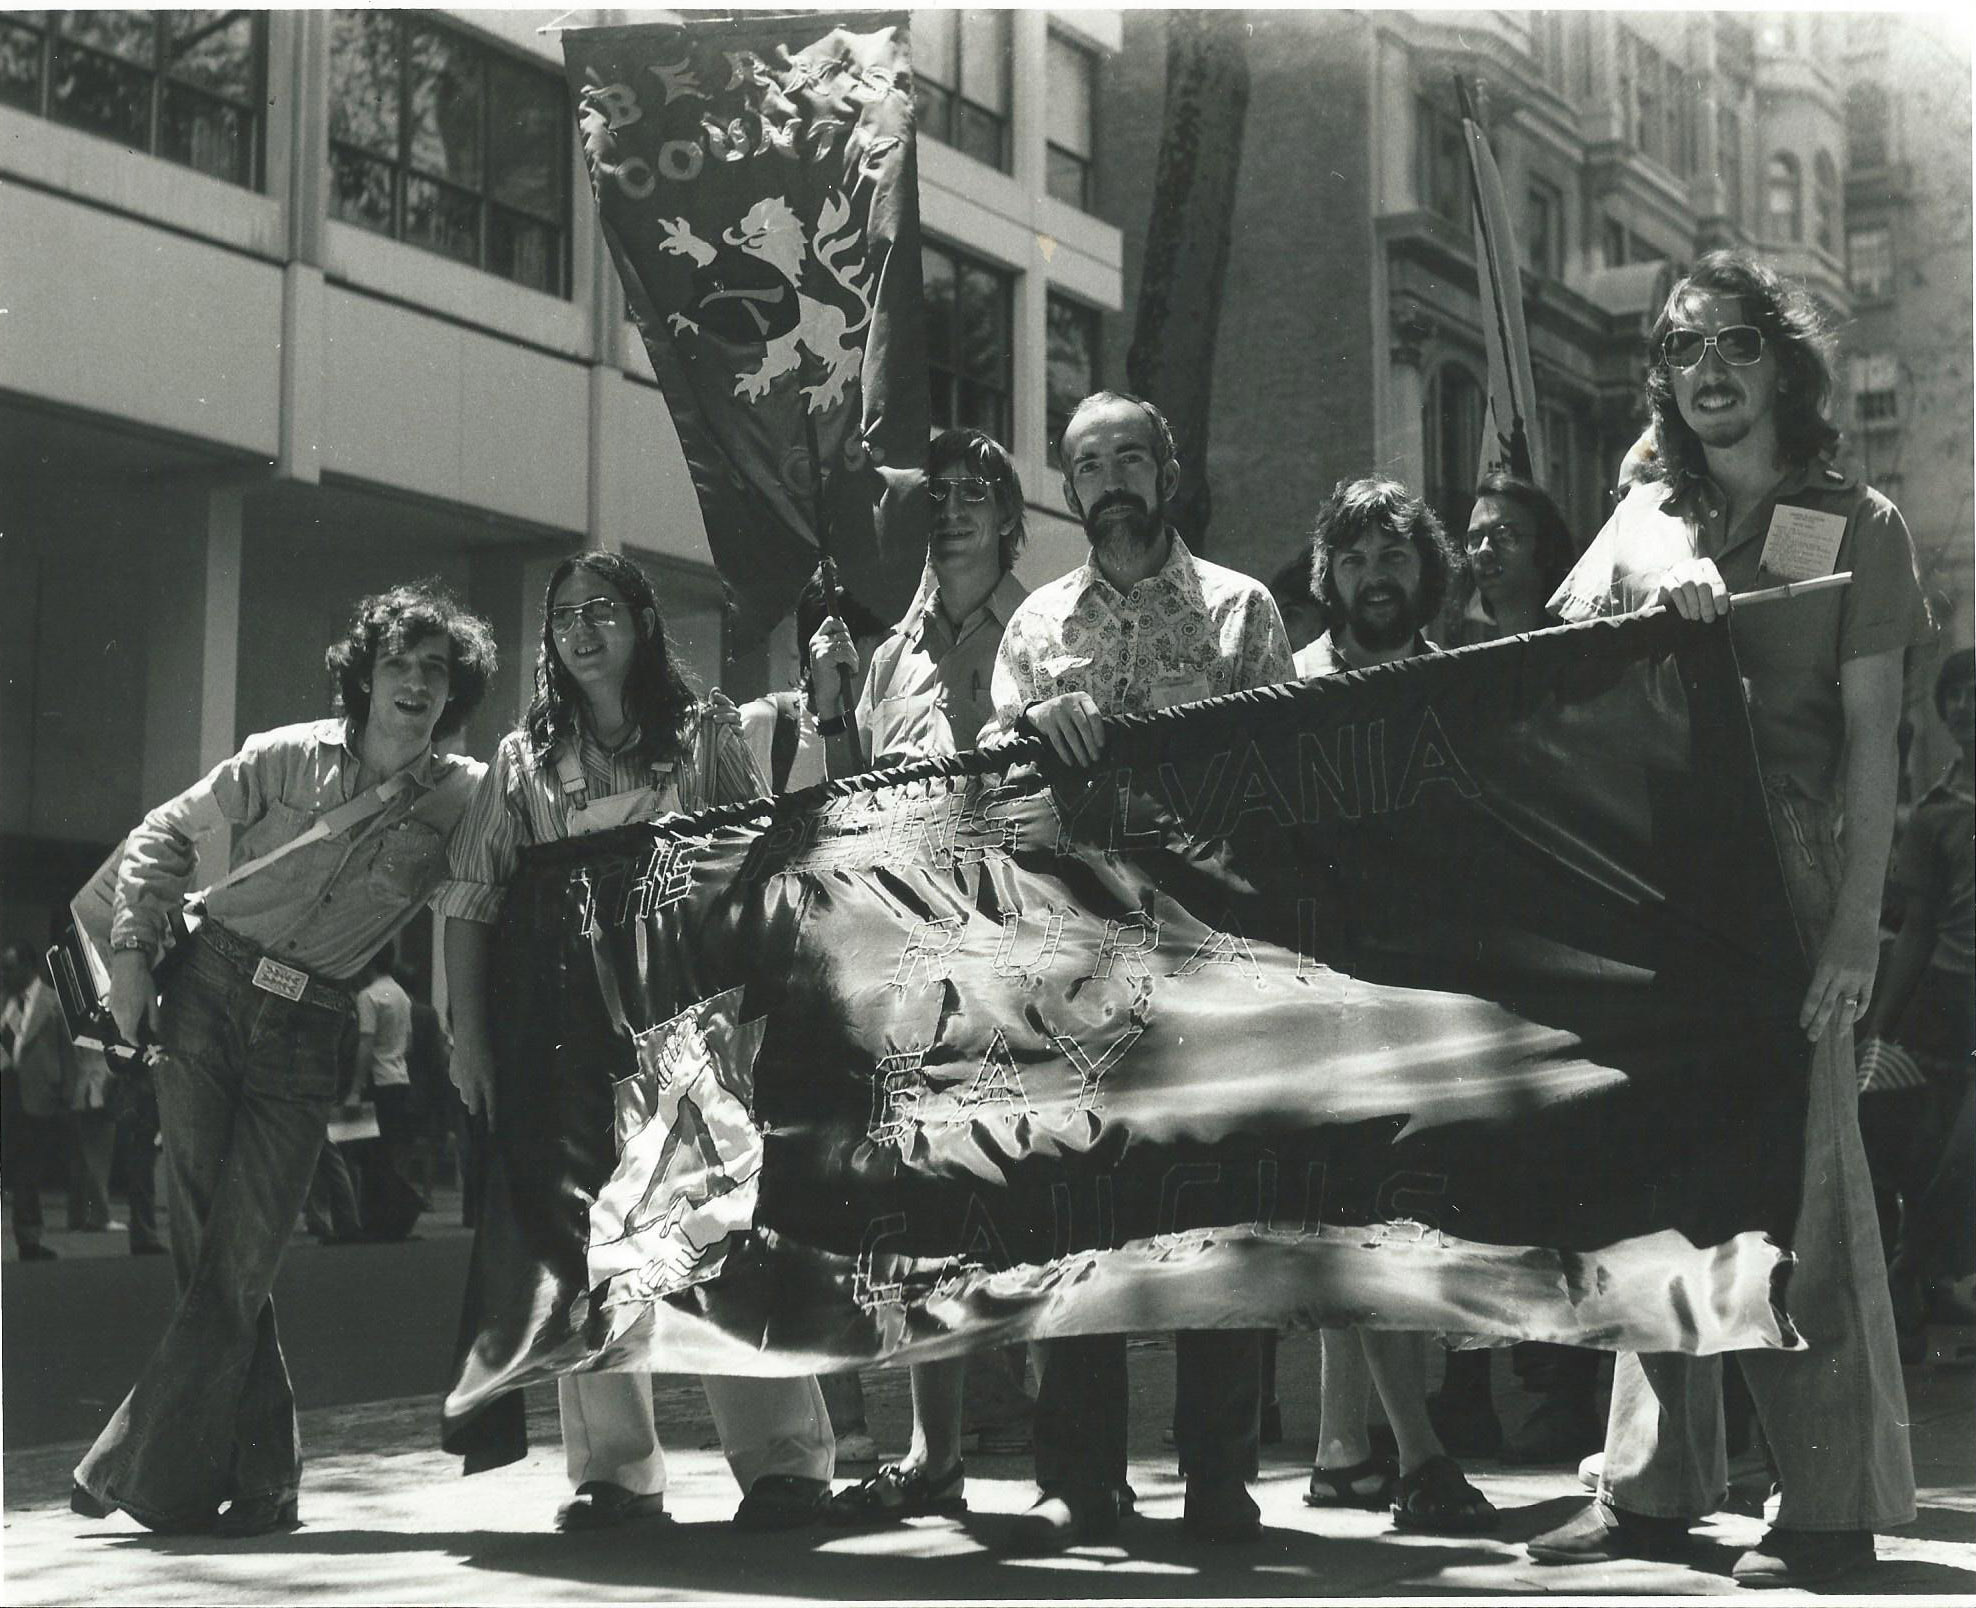 Members of the Pennsylvania Rural Gay Caucus with their hand-made banner at the Philadelphia gay pride parade circa 1976. Photo by Bari Lee Weaver.